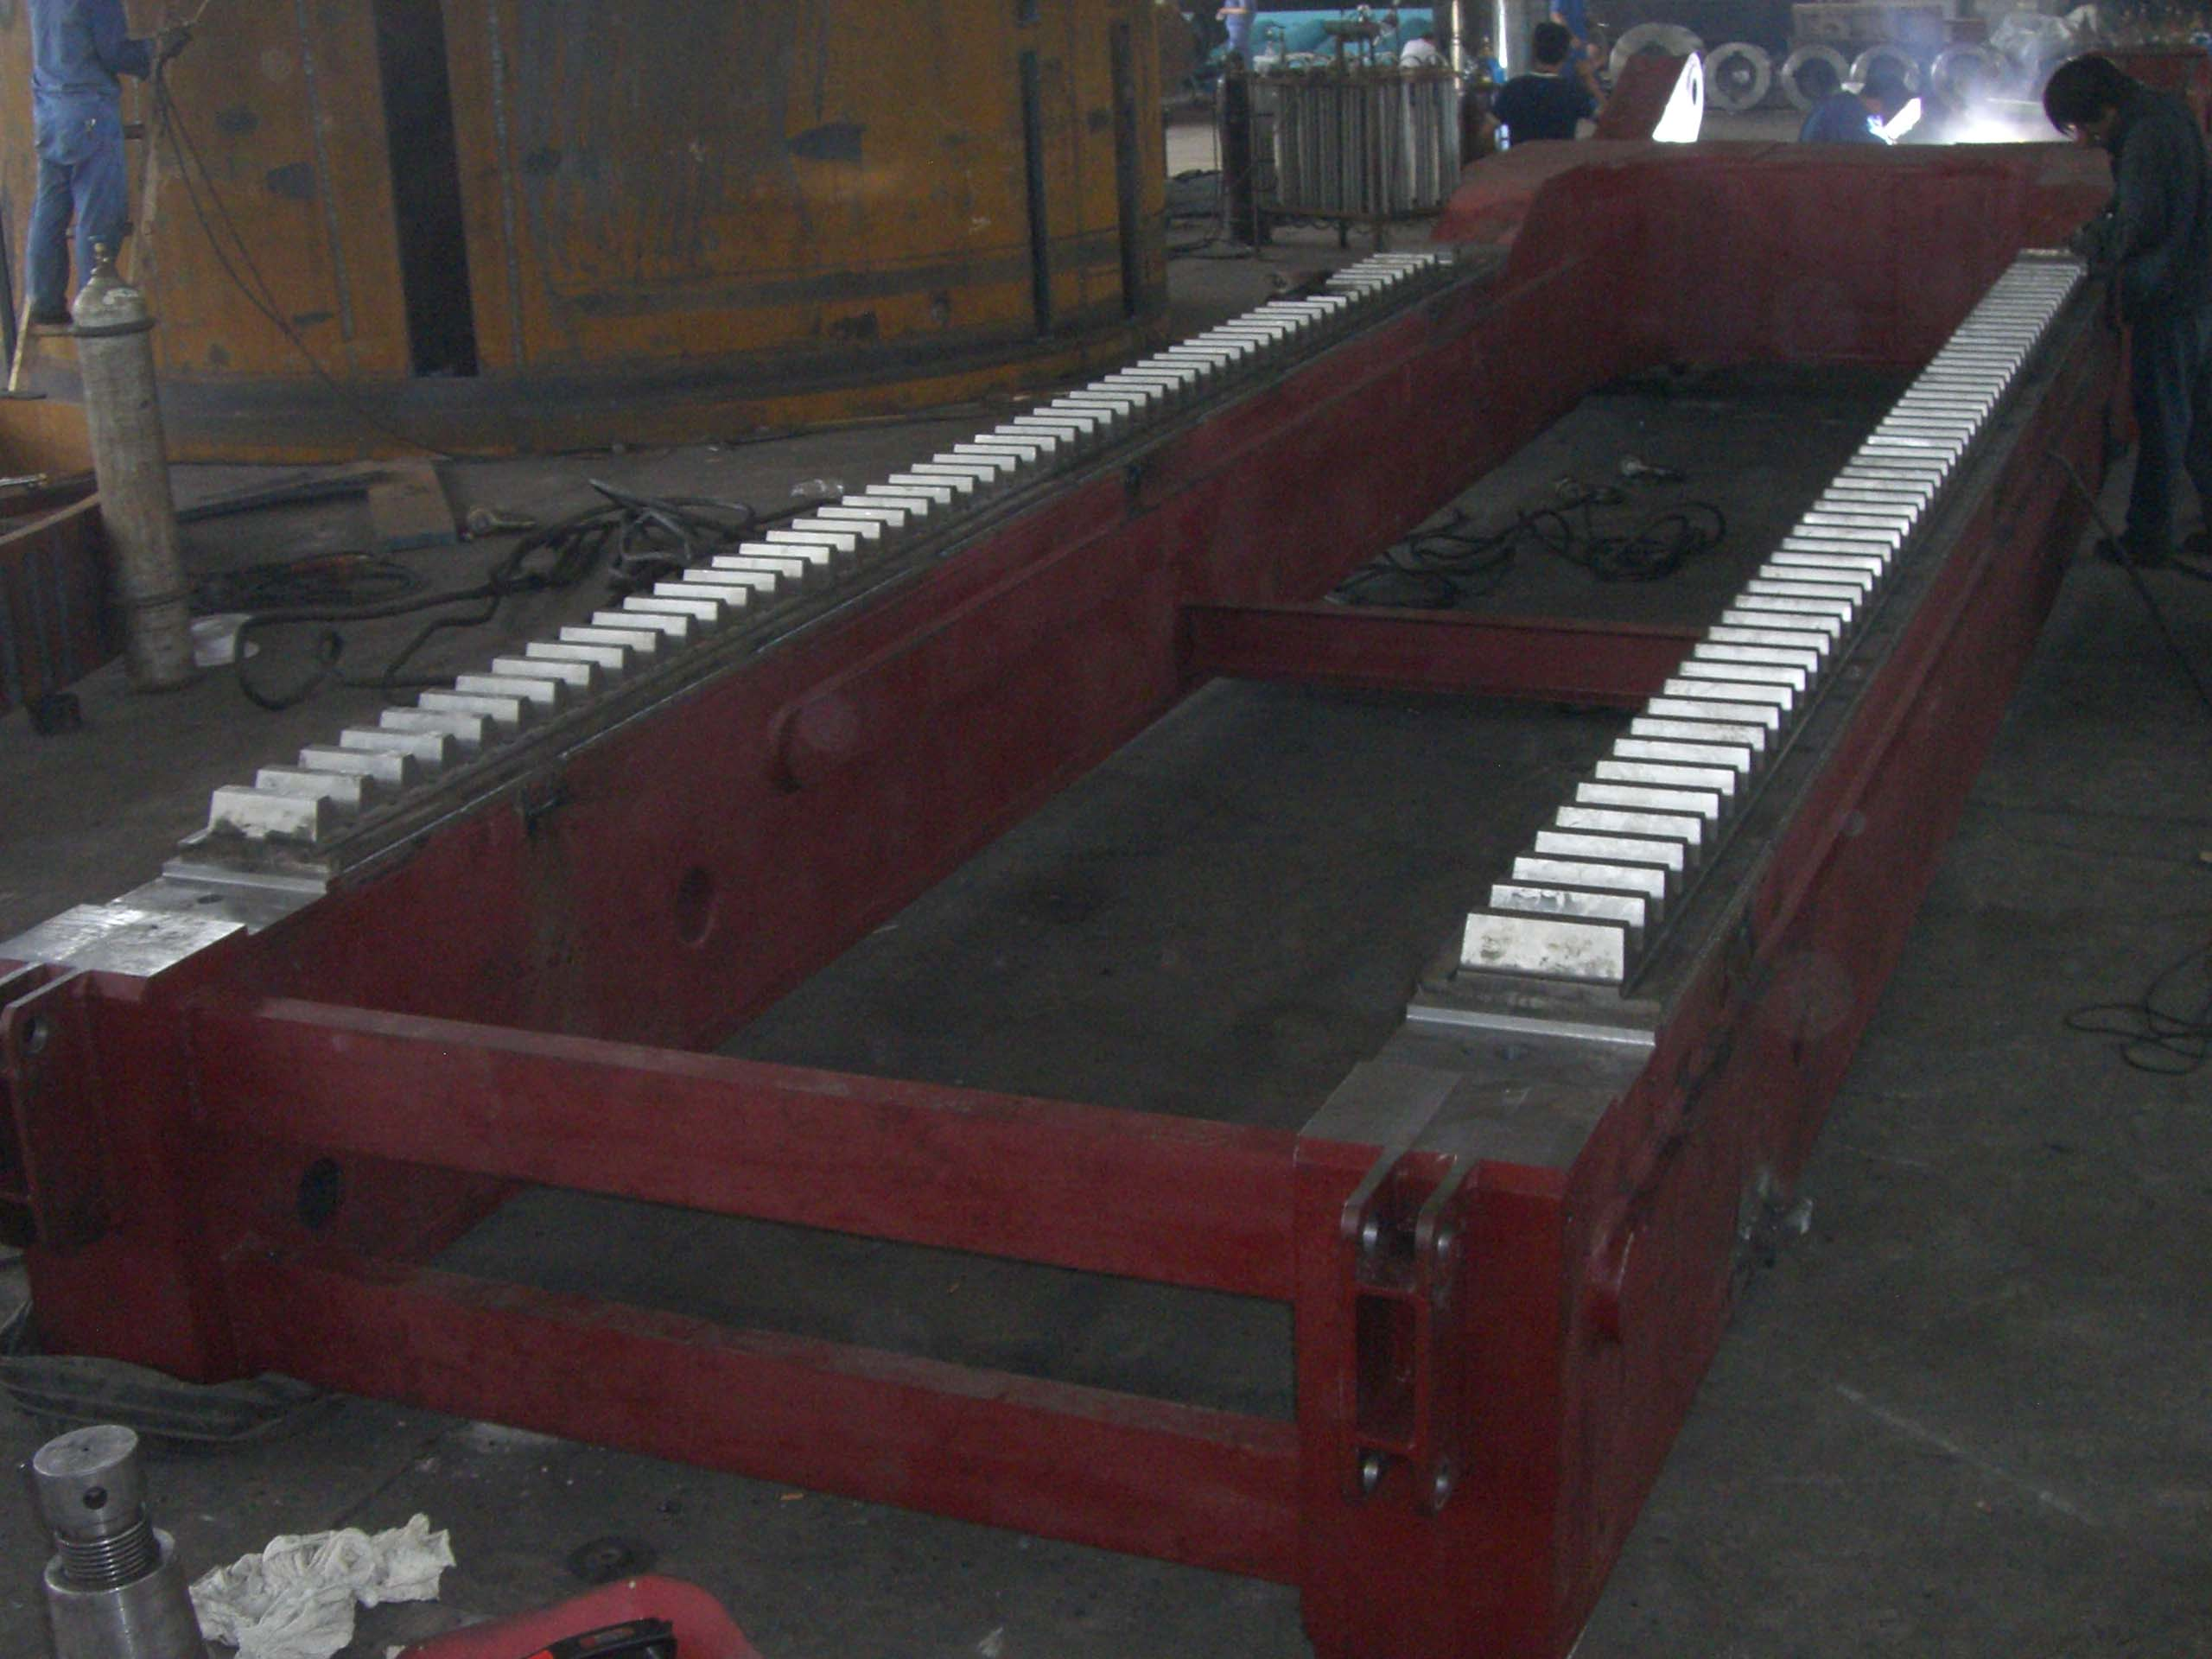 gear rack of the key part of transmission device for mining, metallurgy,cement and heavy machienry